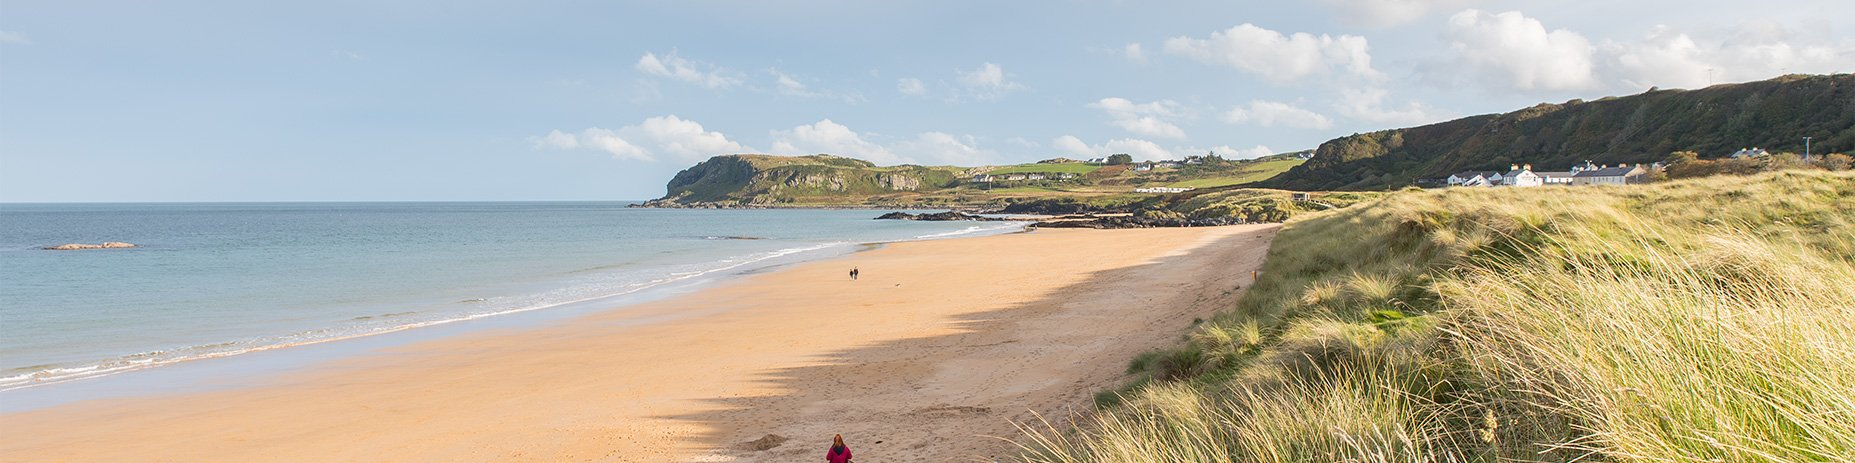 10 Free Things to Do in Ireland - Culdaff Beach